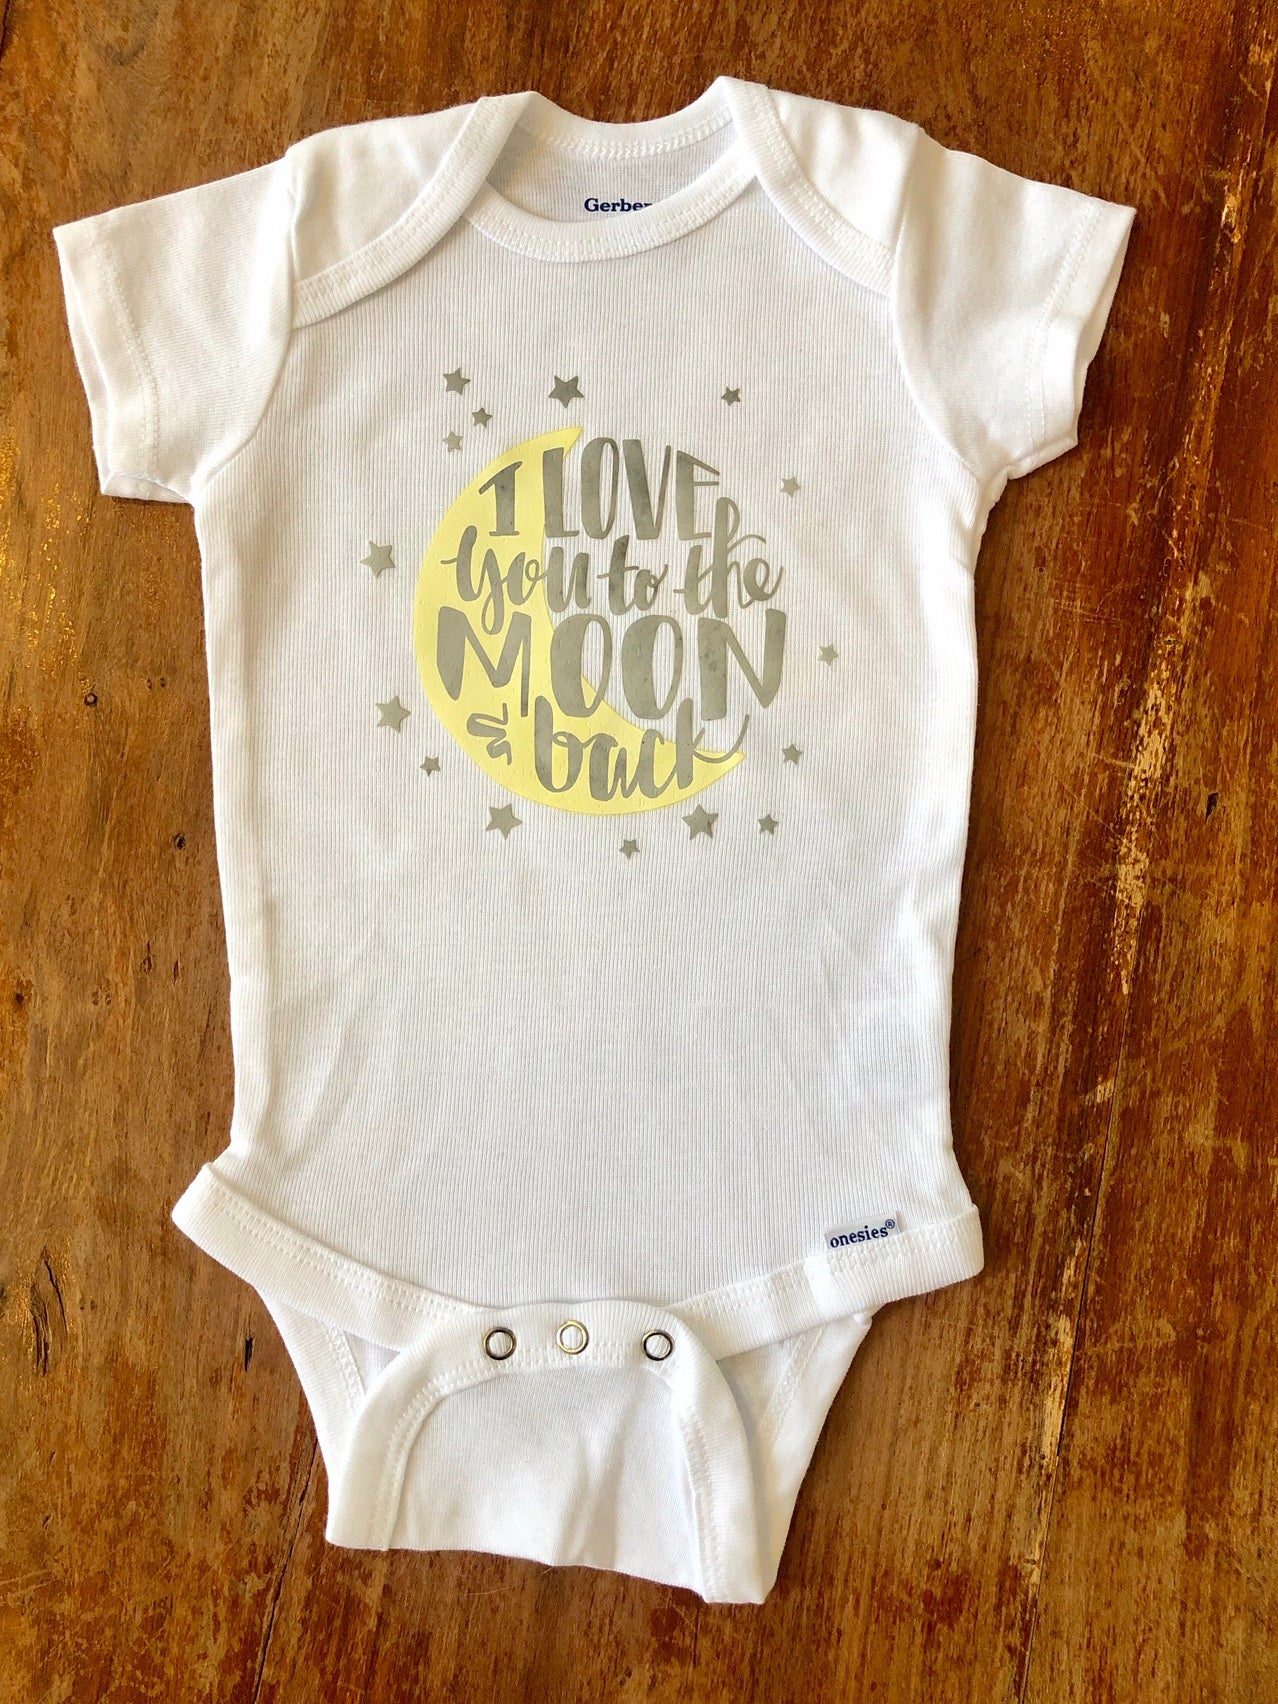 Love you to the moon and back Gerber brand onesie available in sizes from 0-24 months.